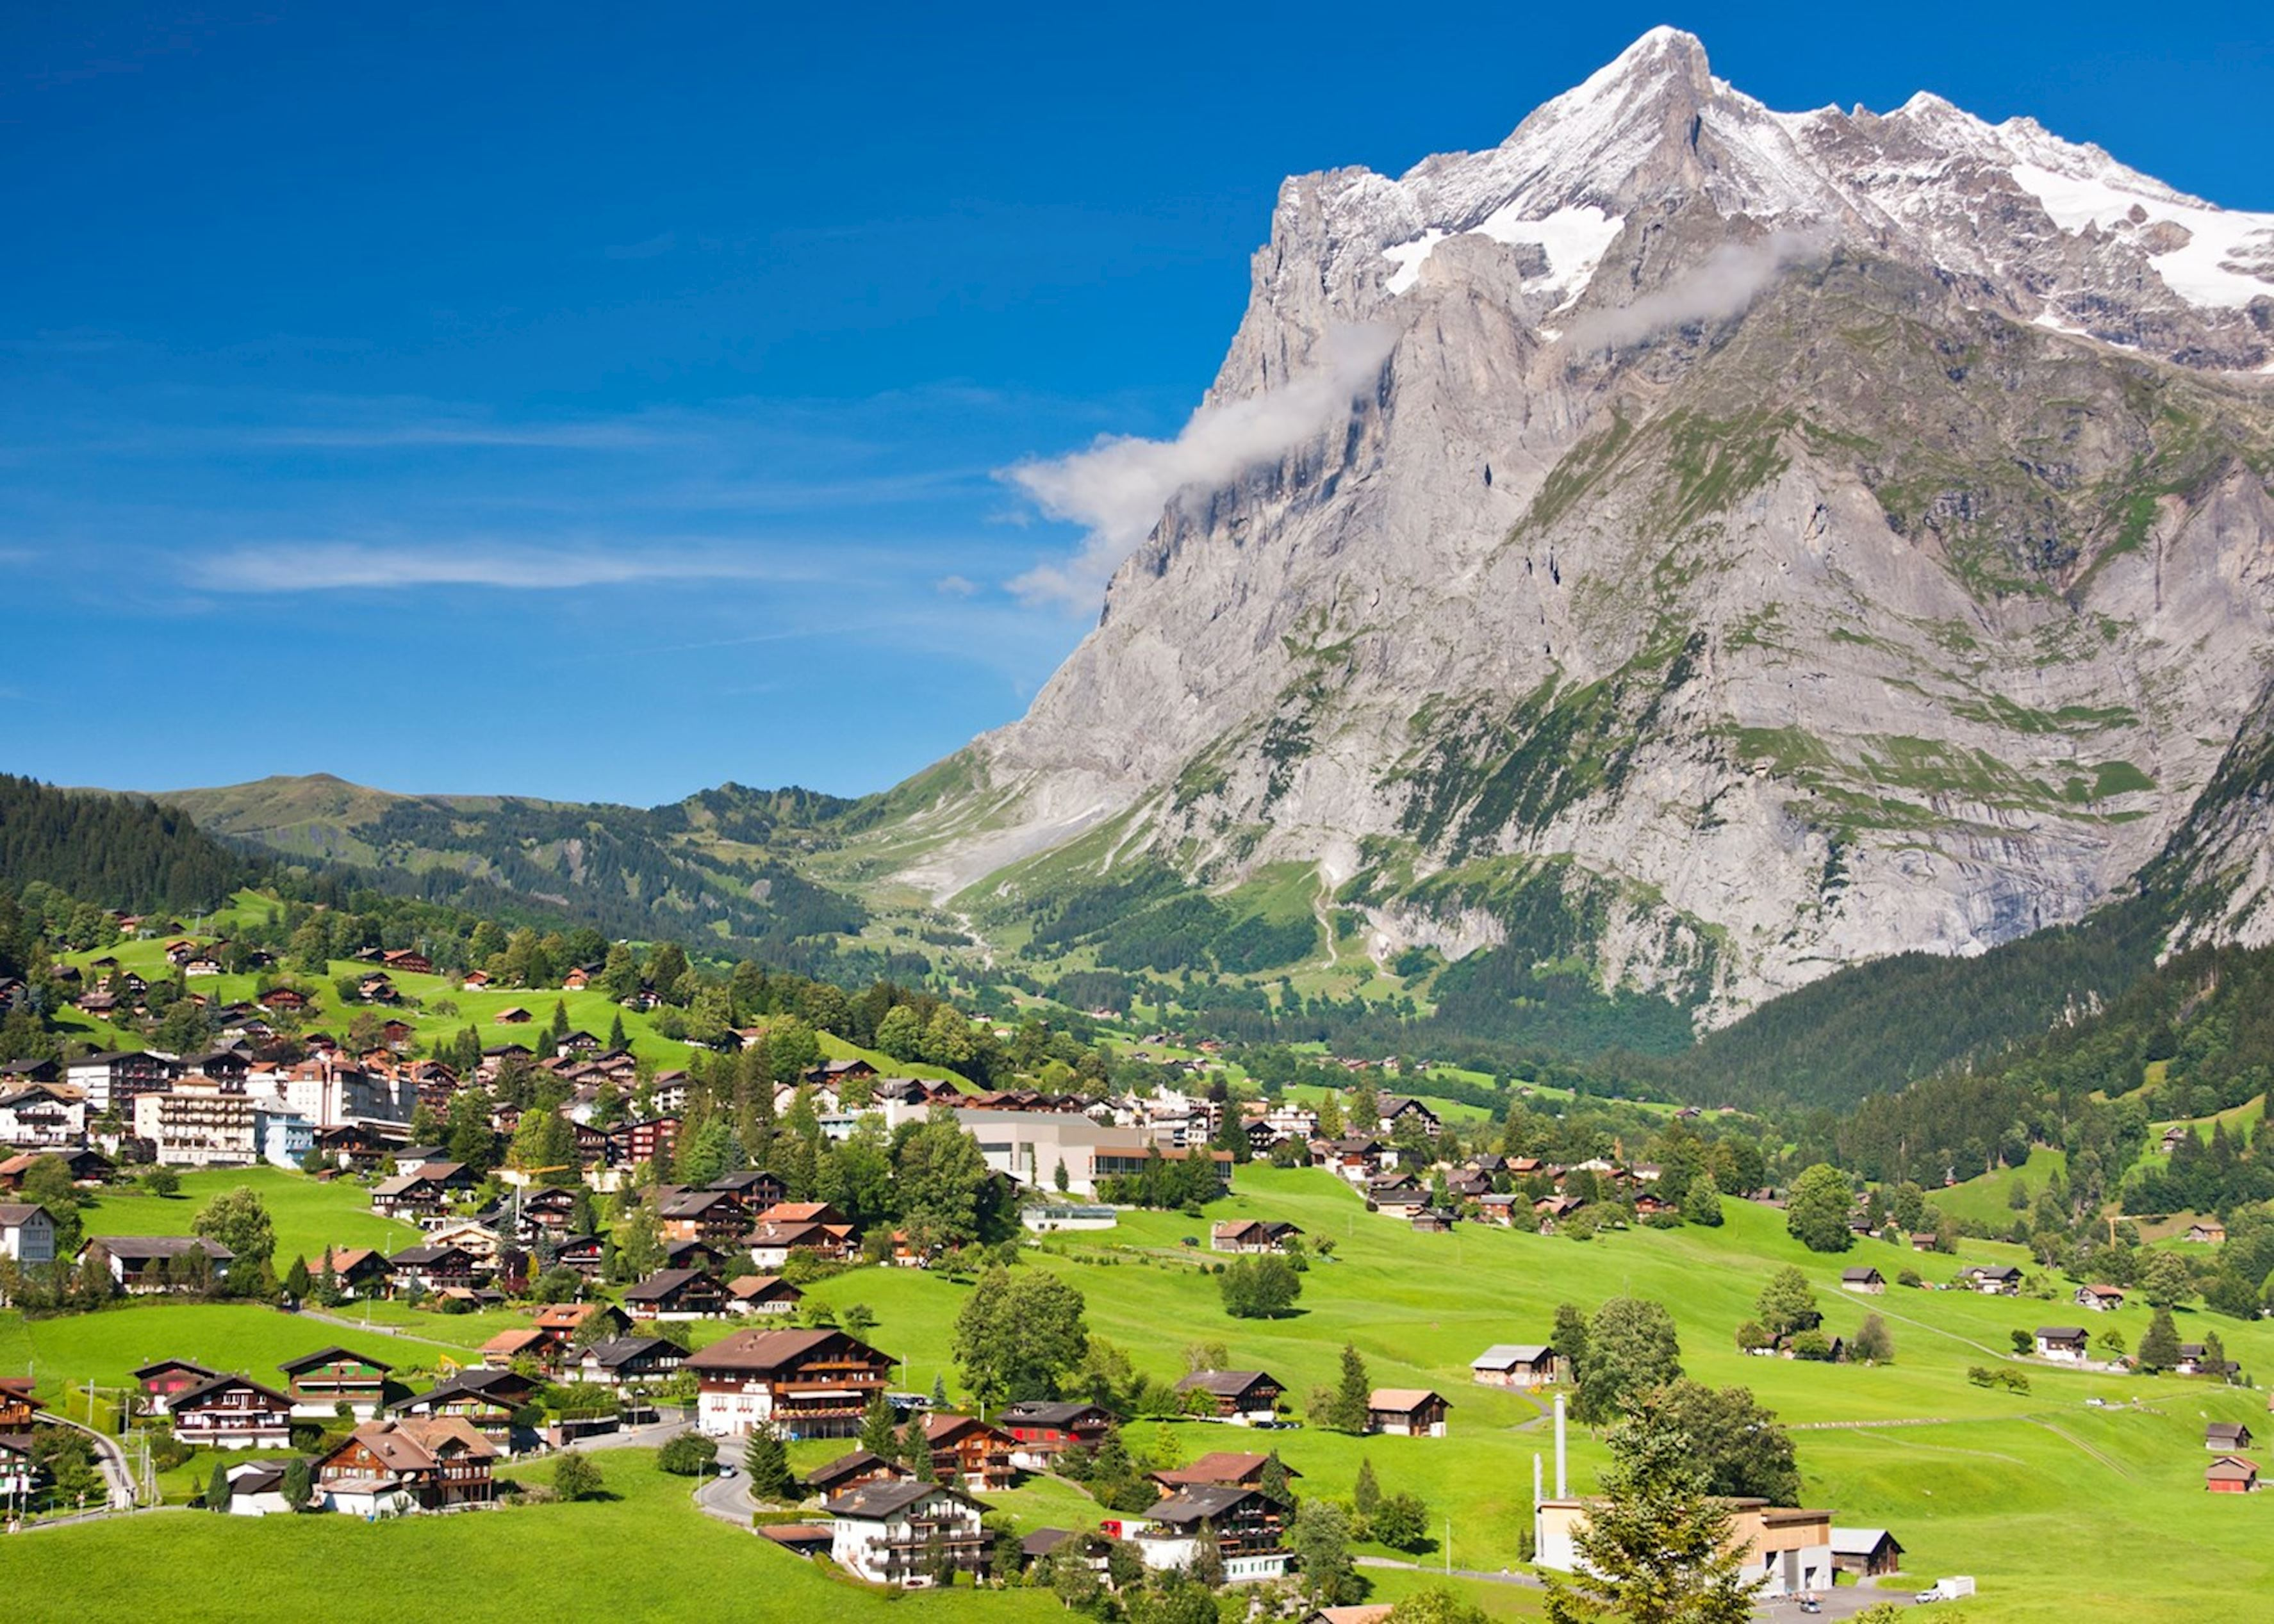 Visit Grindelwald on a trip to Switzerland | Audley Travel